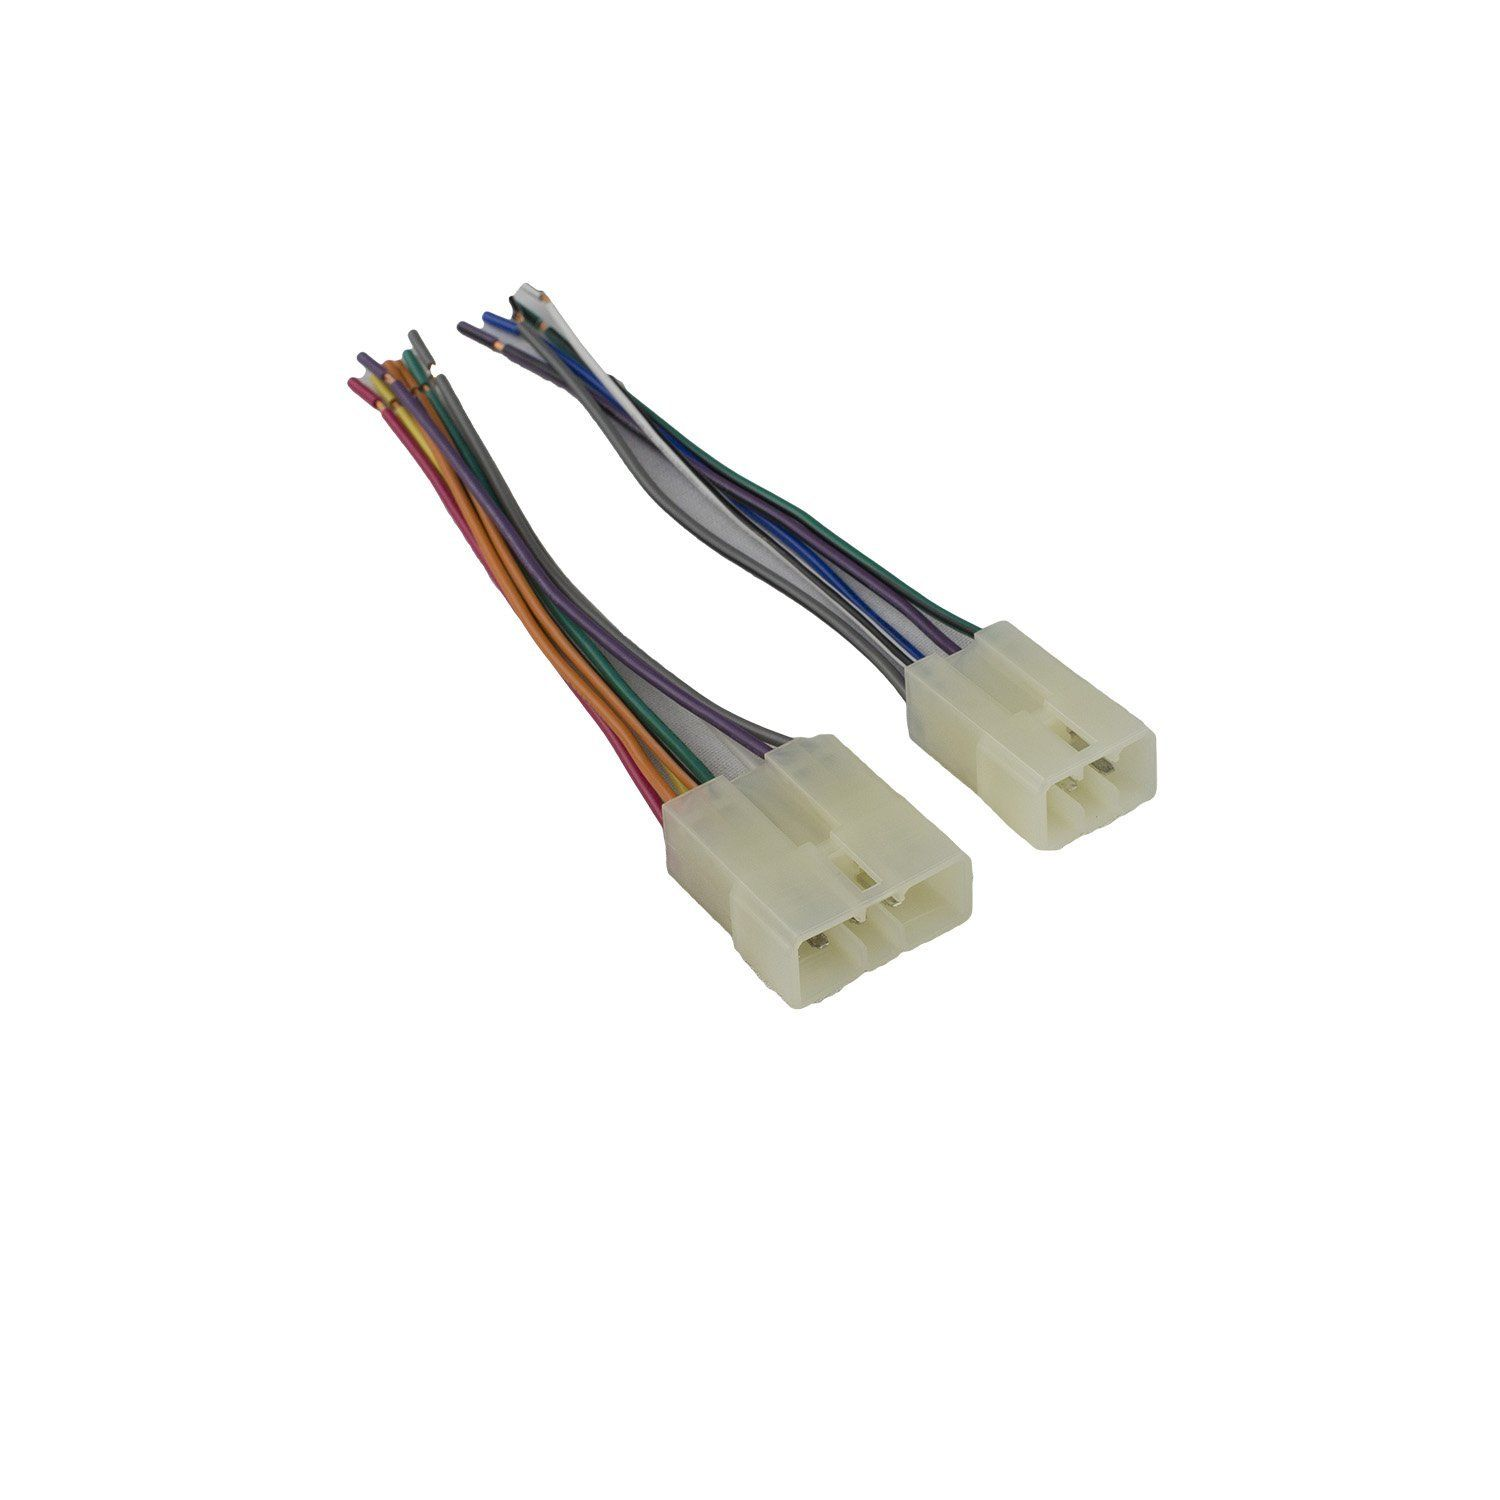 Novosonics Daf 610 Wiring Harness For Mitsubishi Chrysler Import Car Stereo Connector Fits Existing Connector In Your Vehicle Import Cars Car Stereo Harness